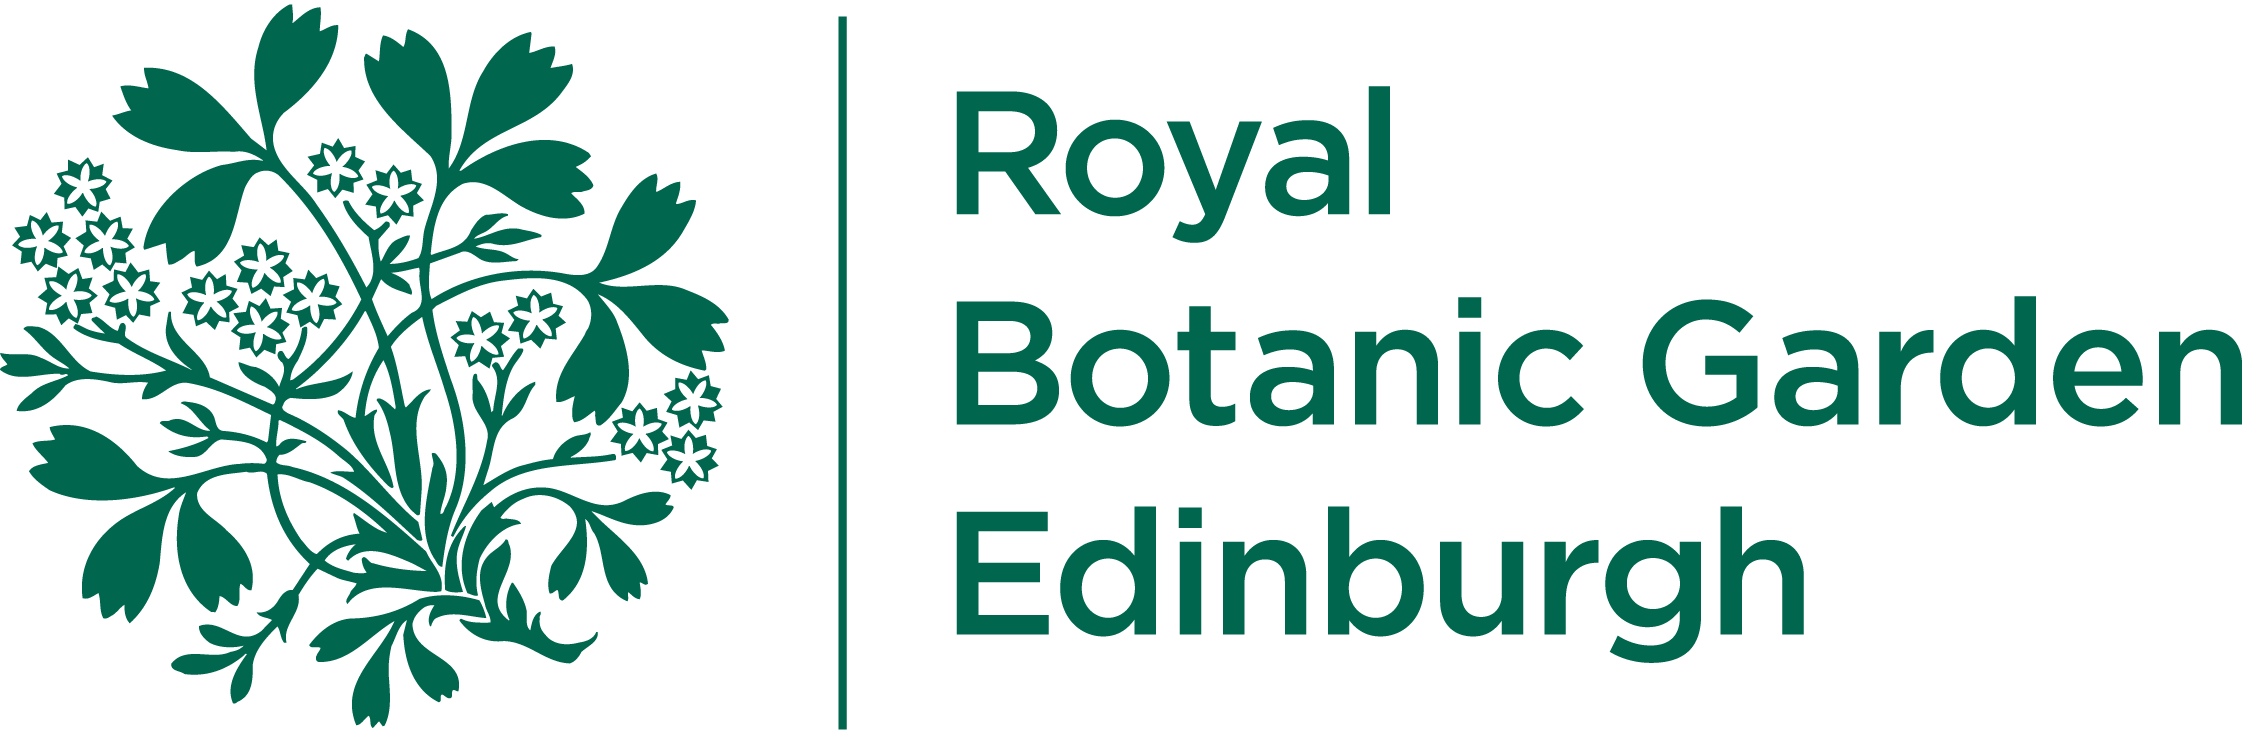 Logo of the Royal Botanic Garden Edinburgh